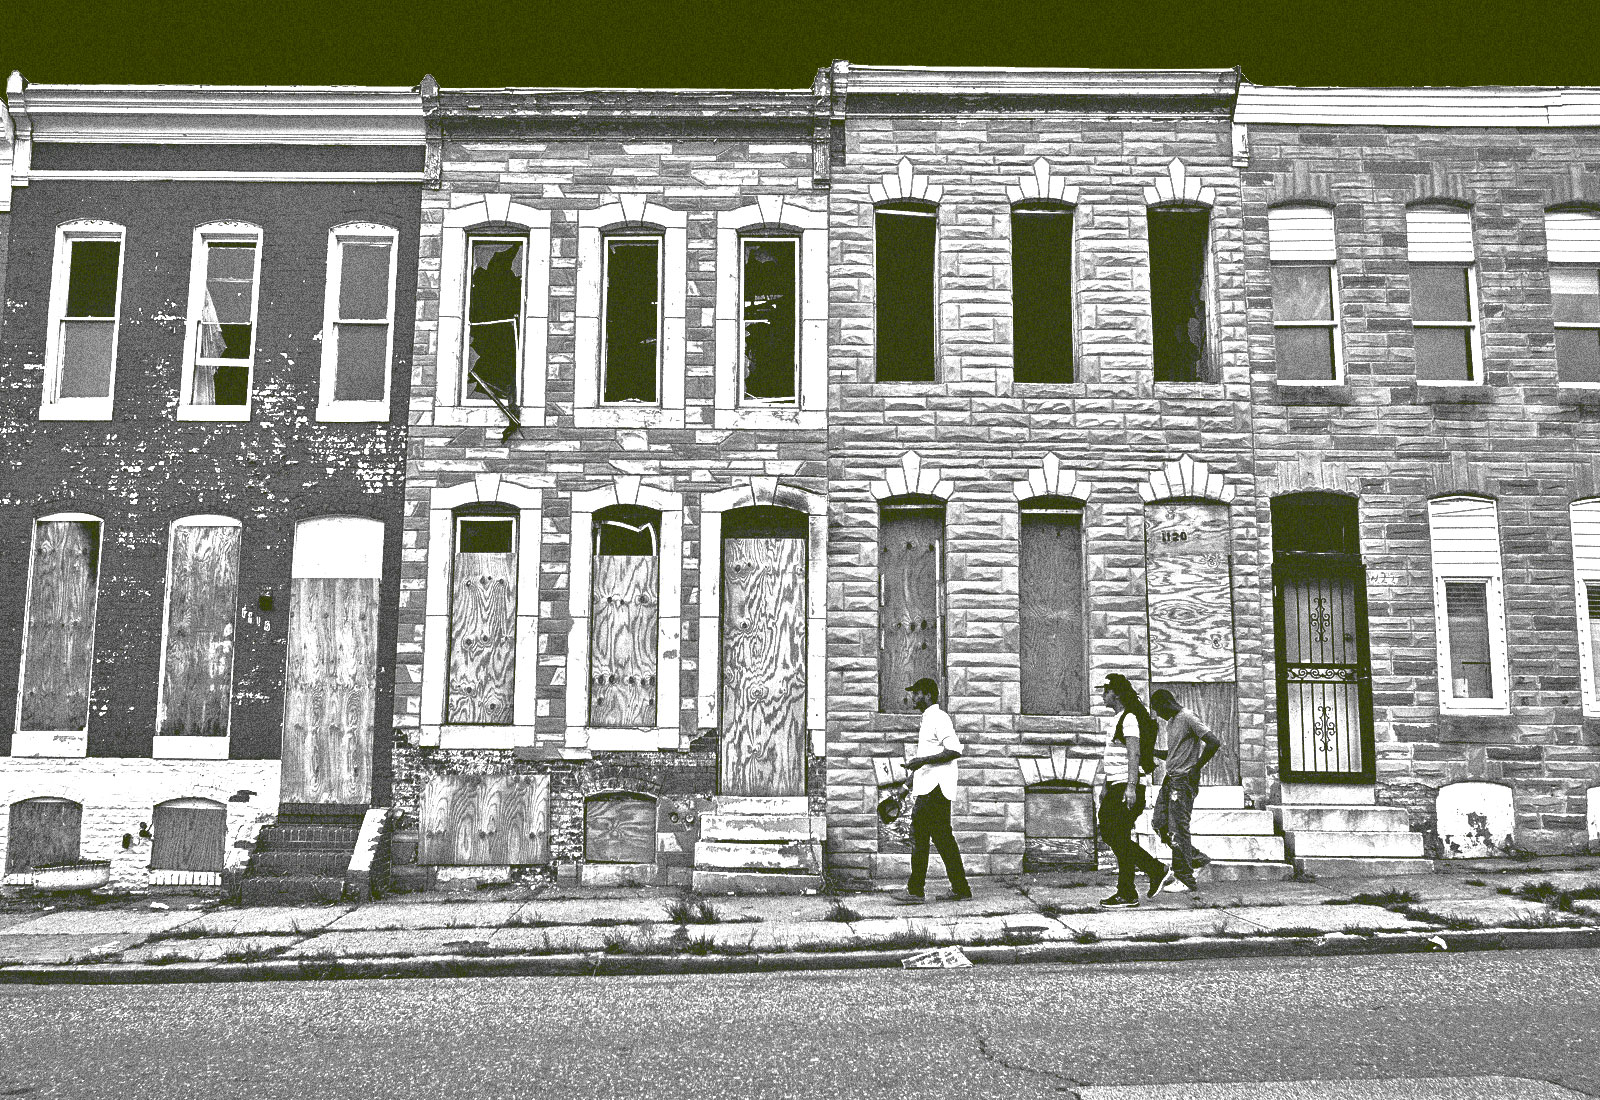 Three pedestrians pass by a row of boarded up houses in east Baltimore, Maryland.